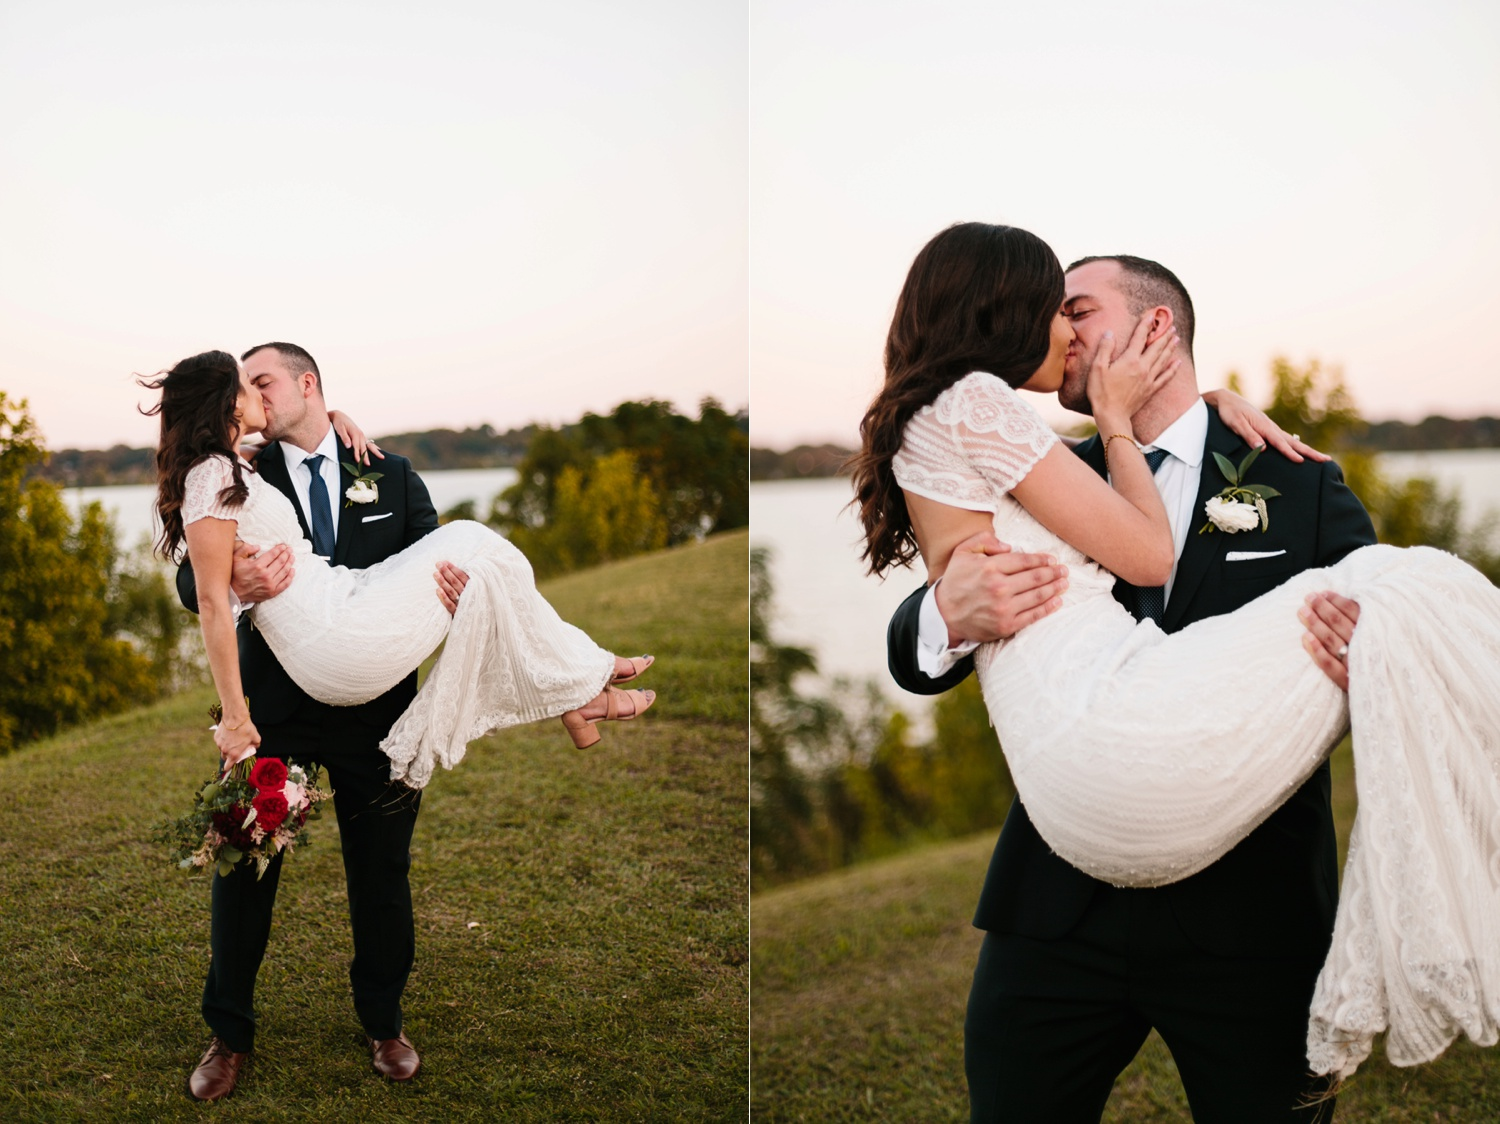 Kadee + Tyler | a raw, emotional wedding at the Filter Building on White Rock Lake in Dallas, TX by North Texas Wedding Photographer, Rachel Meagan Photography 187